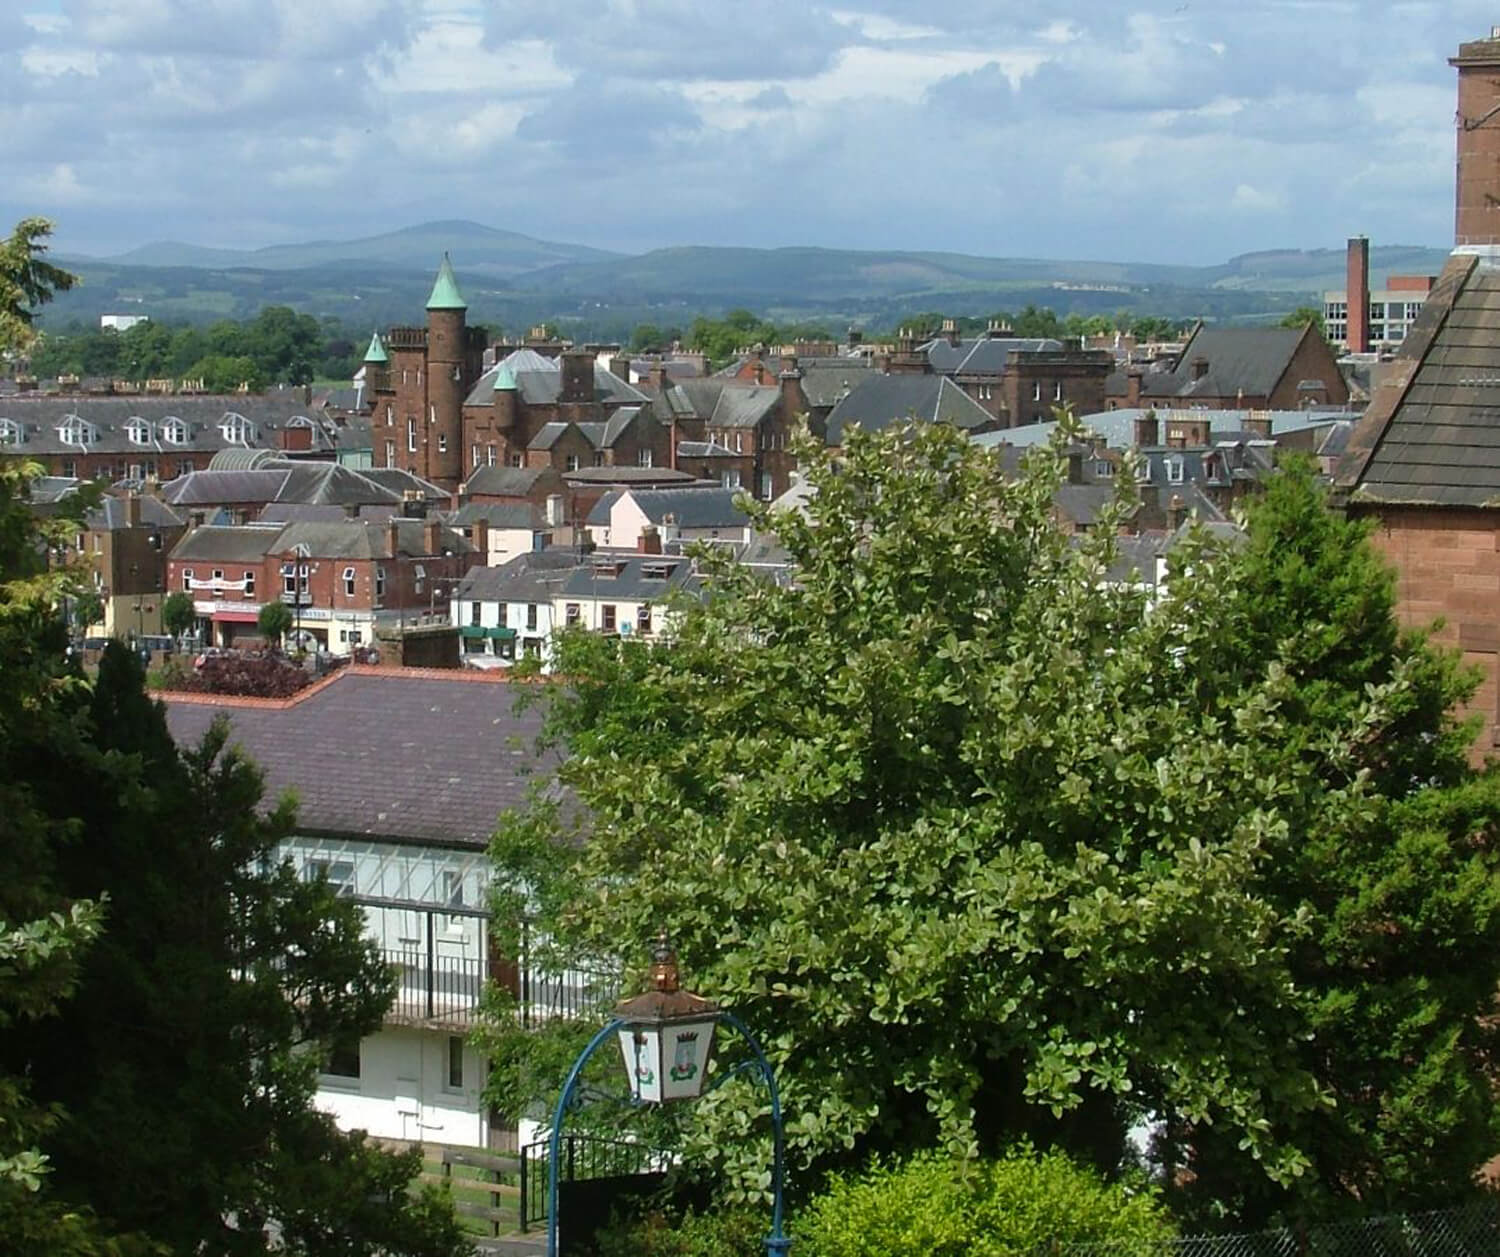 Dumfries, from the Museum. Photo by tom at clearwood.co.uk